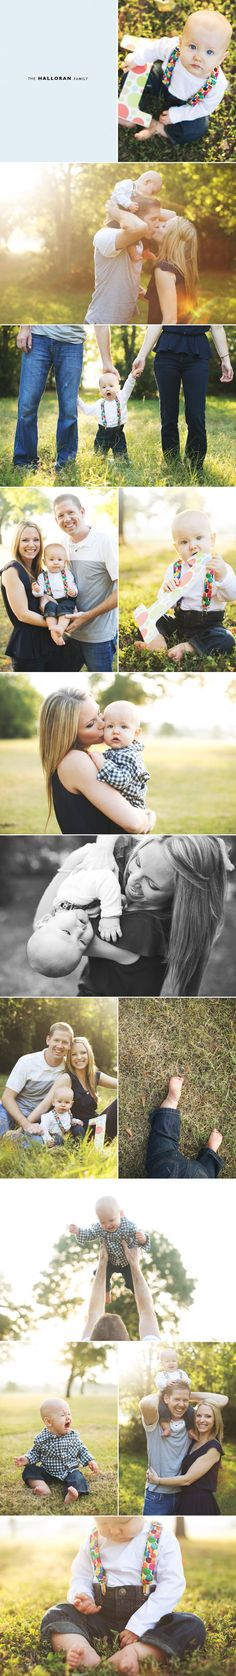 eephotome.com | one year baby | one year photo ideas | lens flare